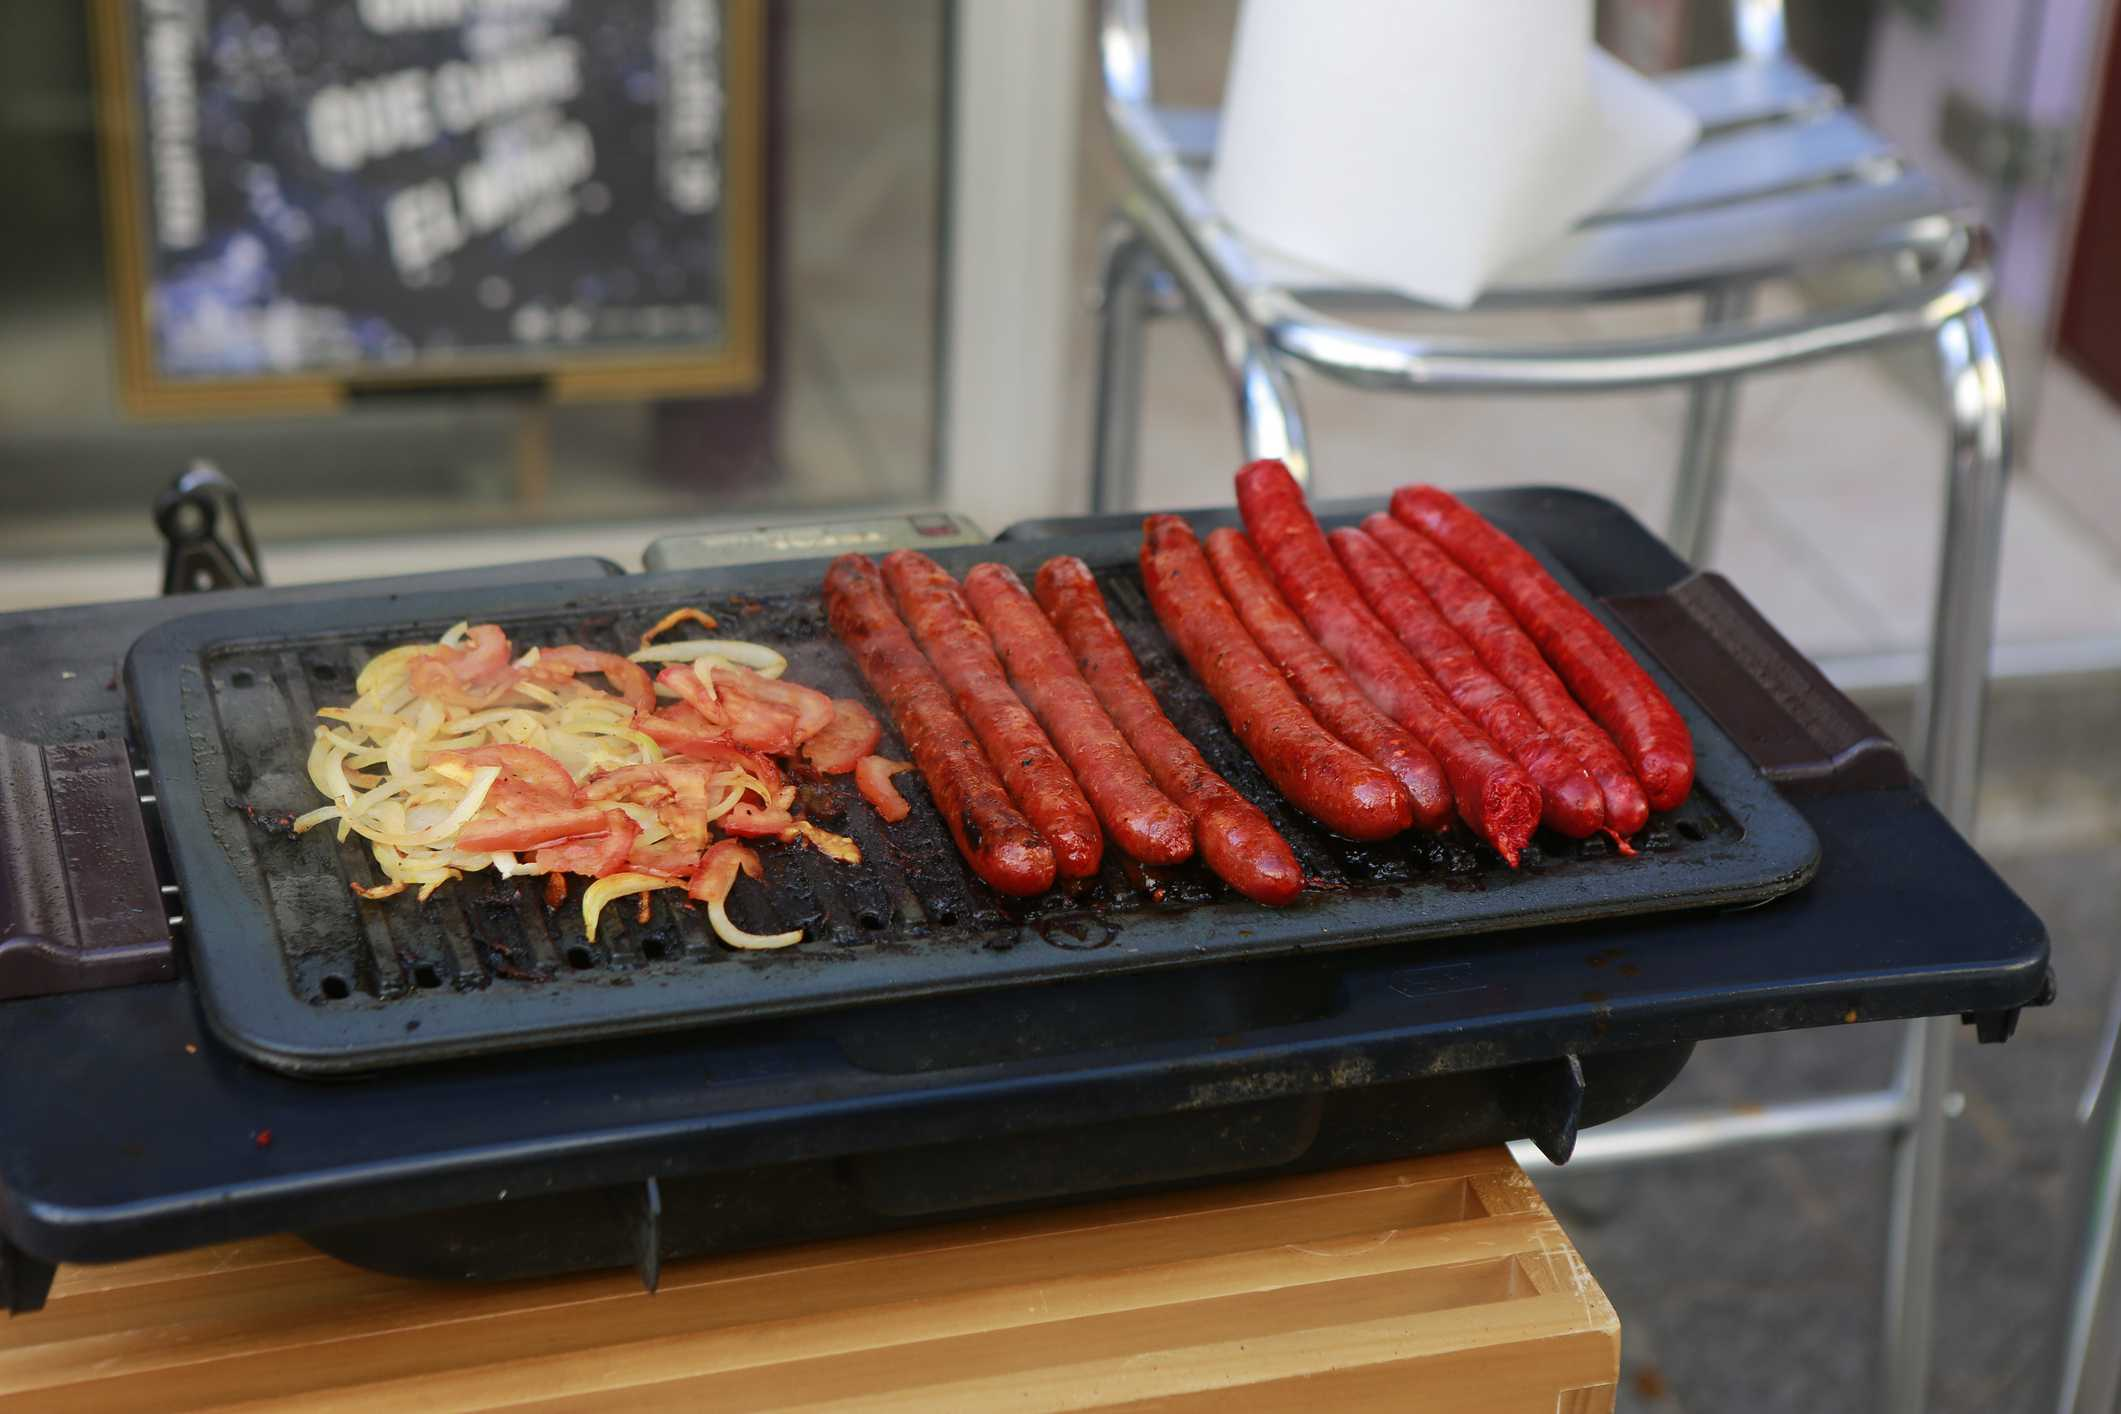 Merguez sausages on a grill